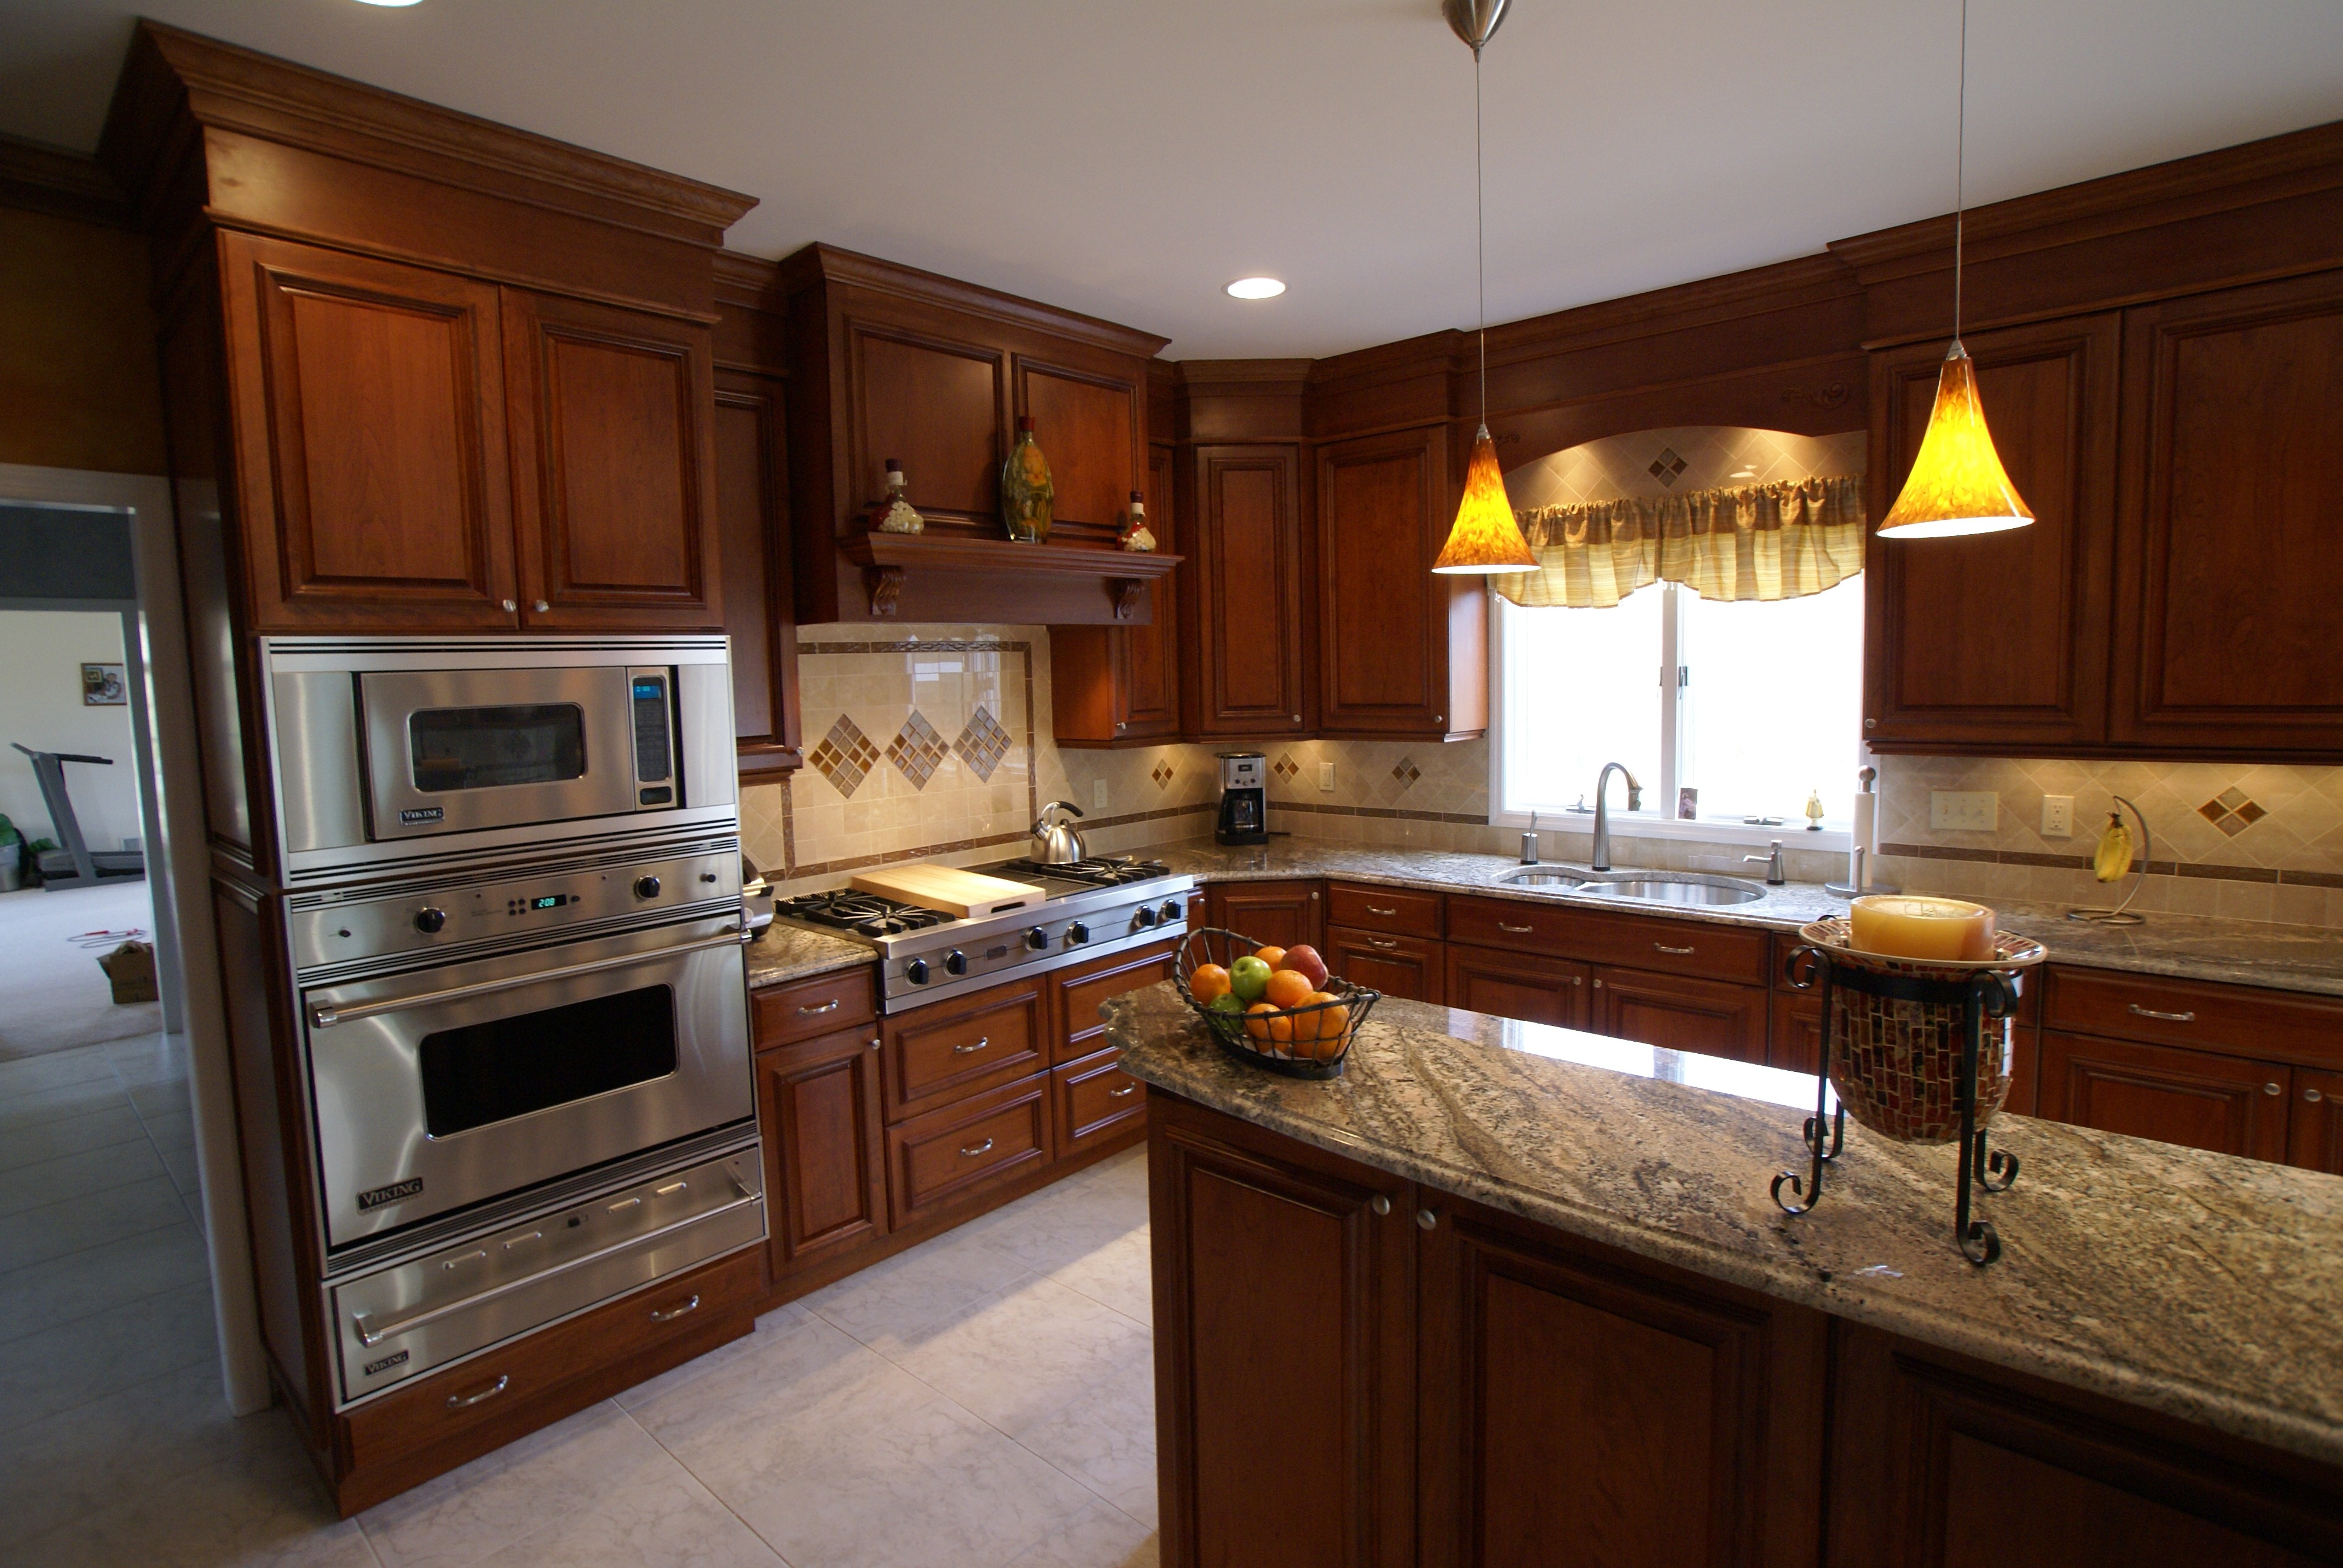 Monmouth County Kitchen Remodeling Ideas To Inspire You Design Build Planners